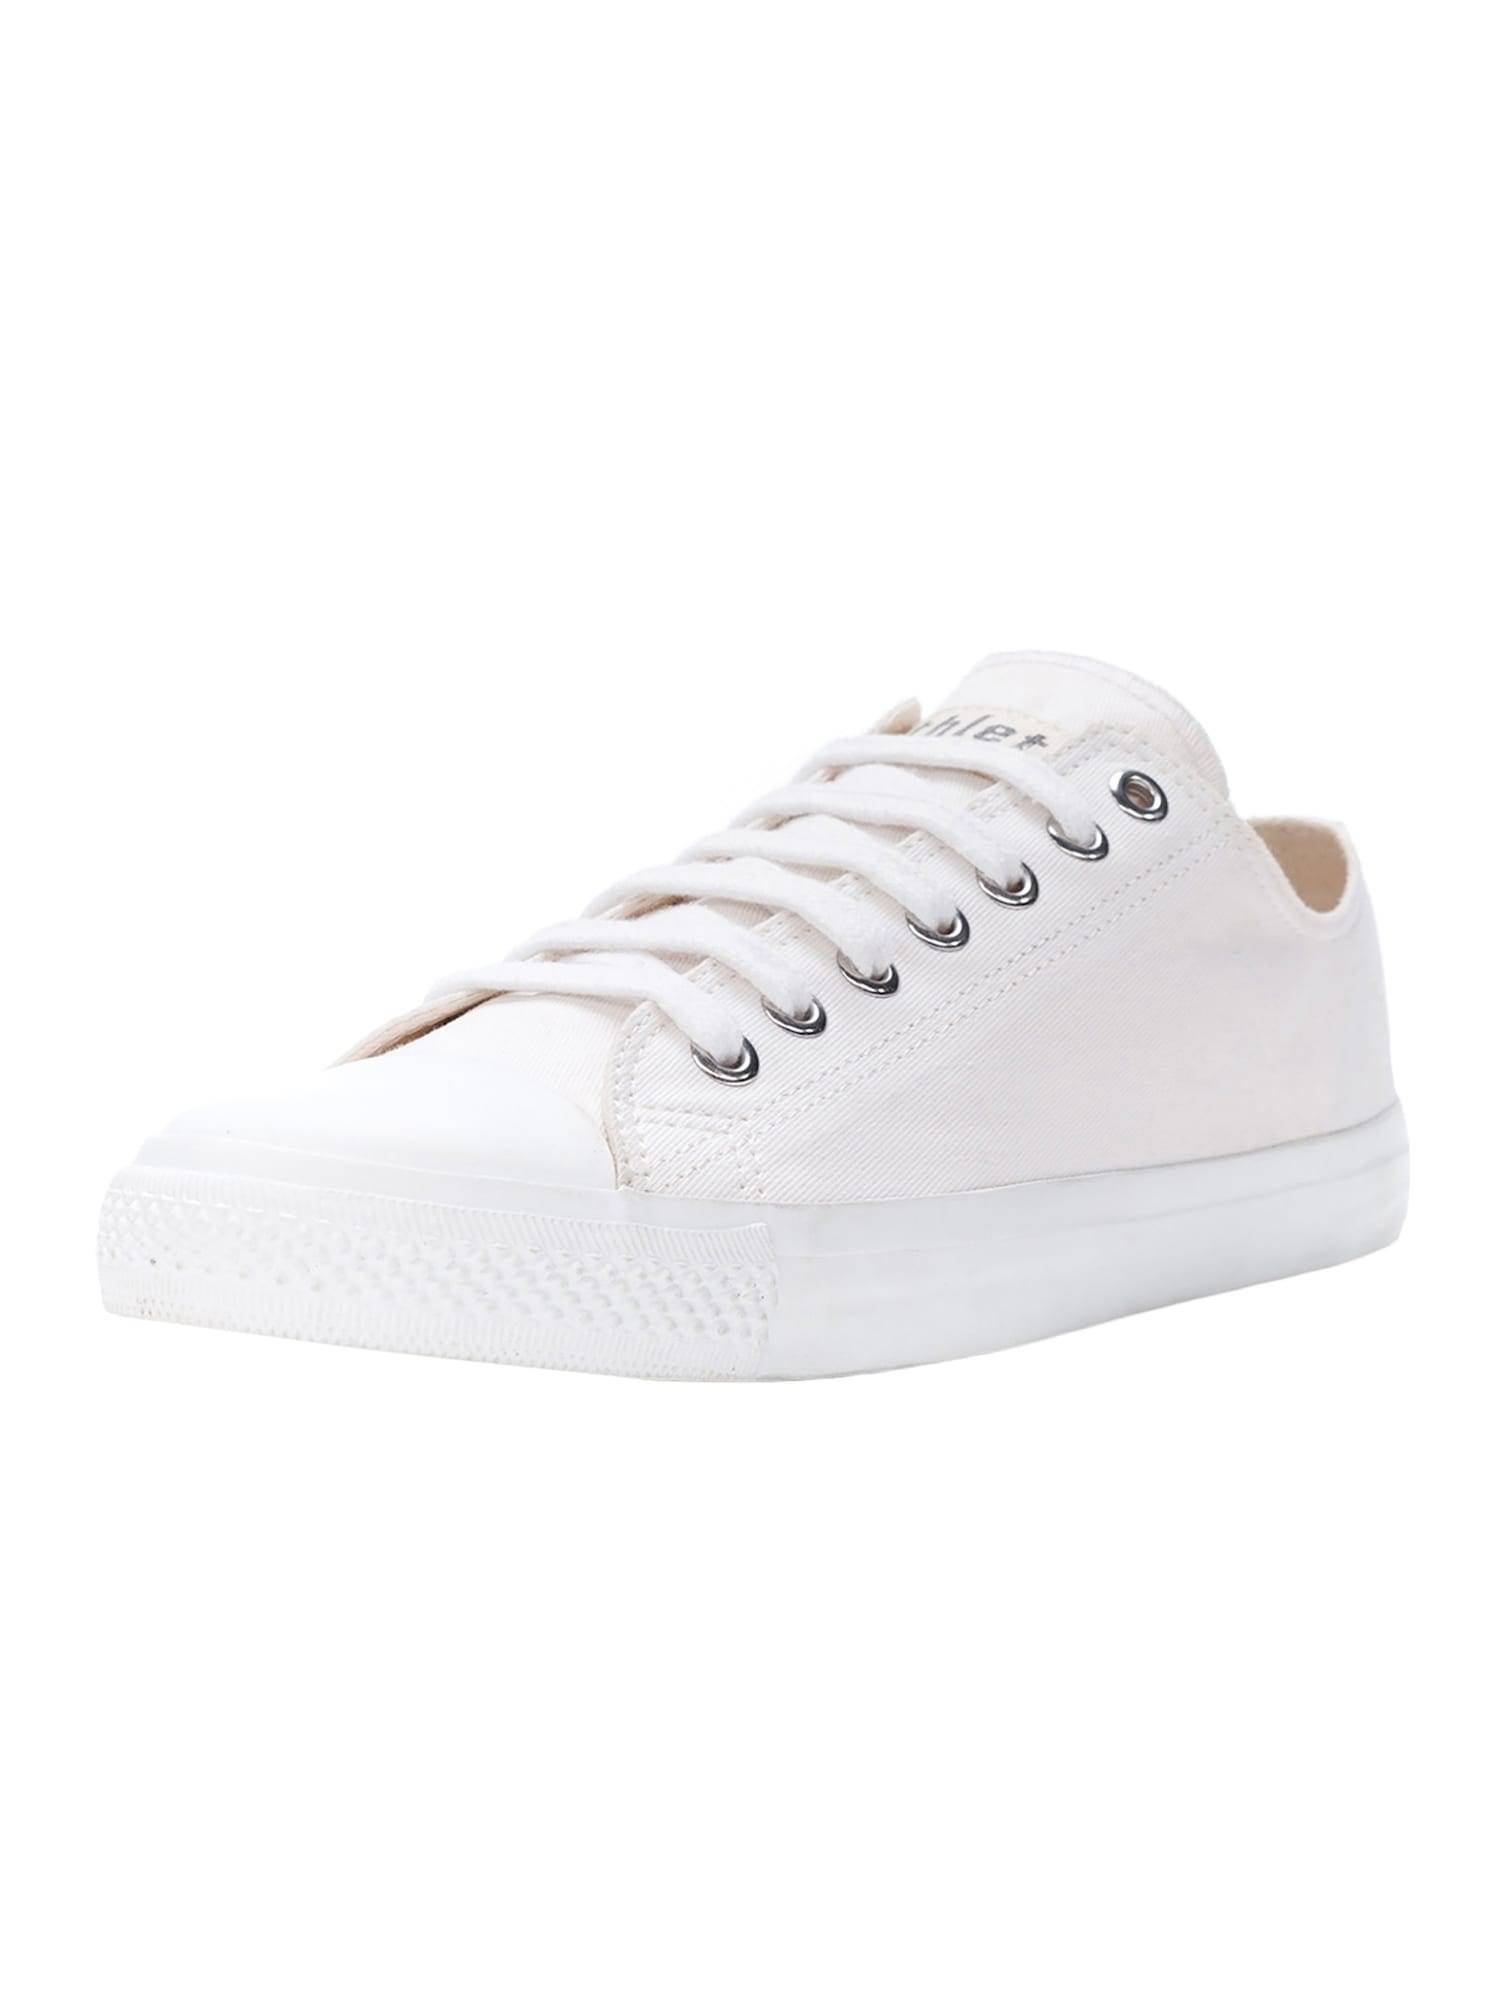 Ethletic Baskets basses 'Fair Trainer White Cap Low Cut'  - Blanc - Taille: 39 - male